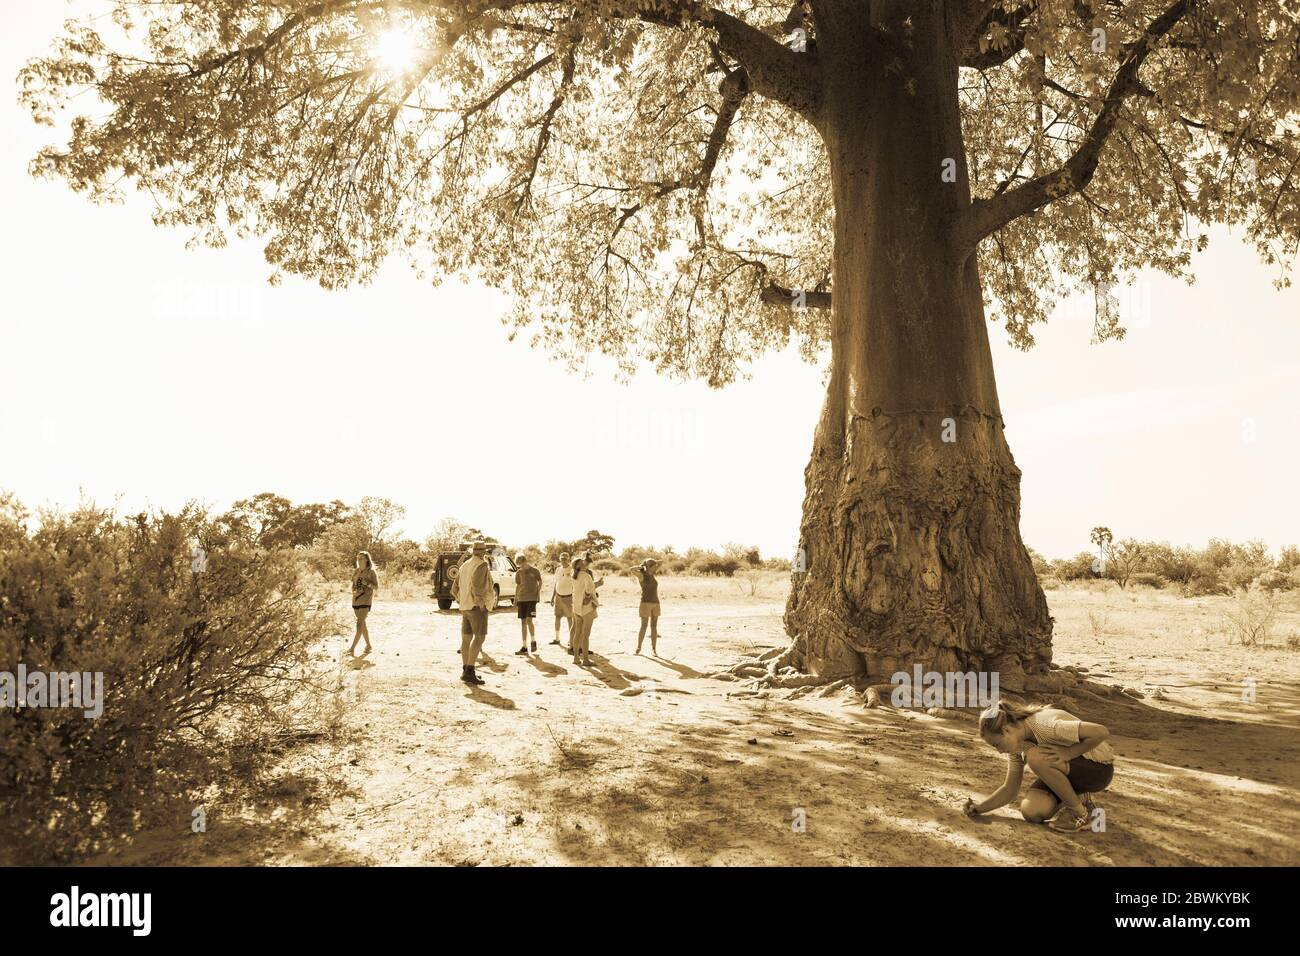 Group of people, tourista and guide under a spreading baobab tree, Adansonia. Stock Photo